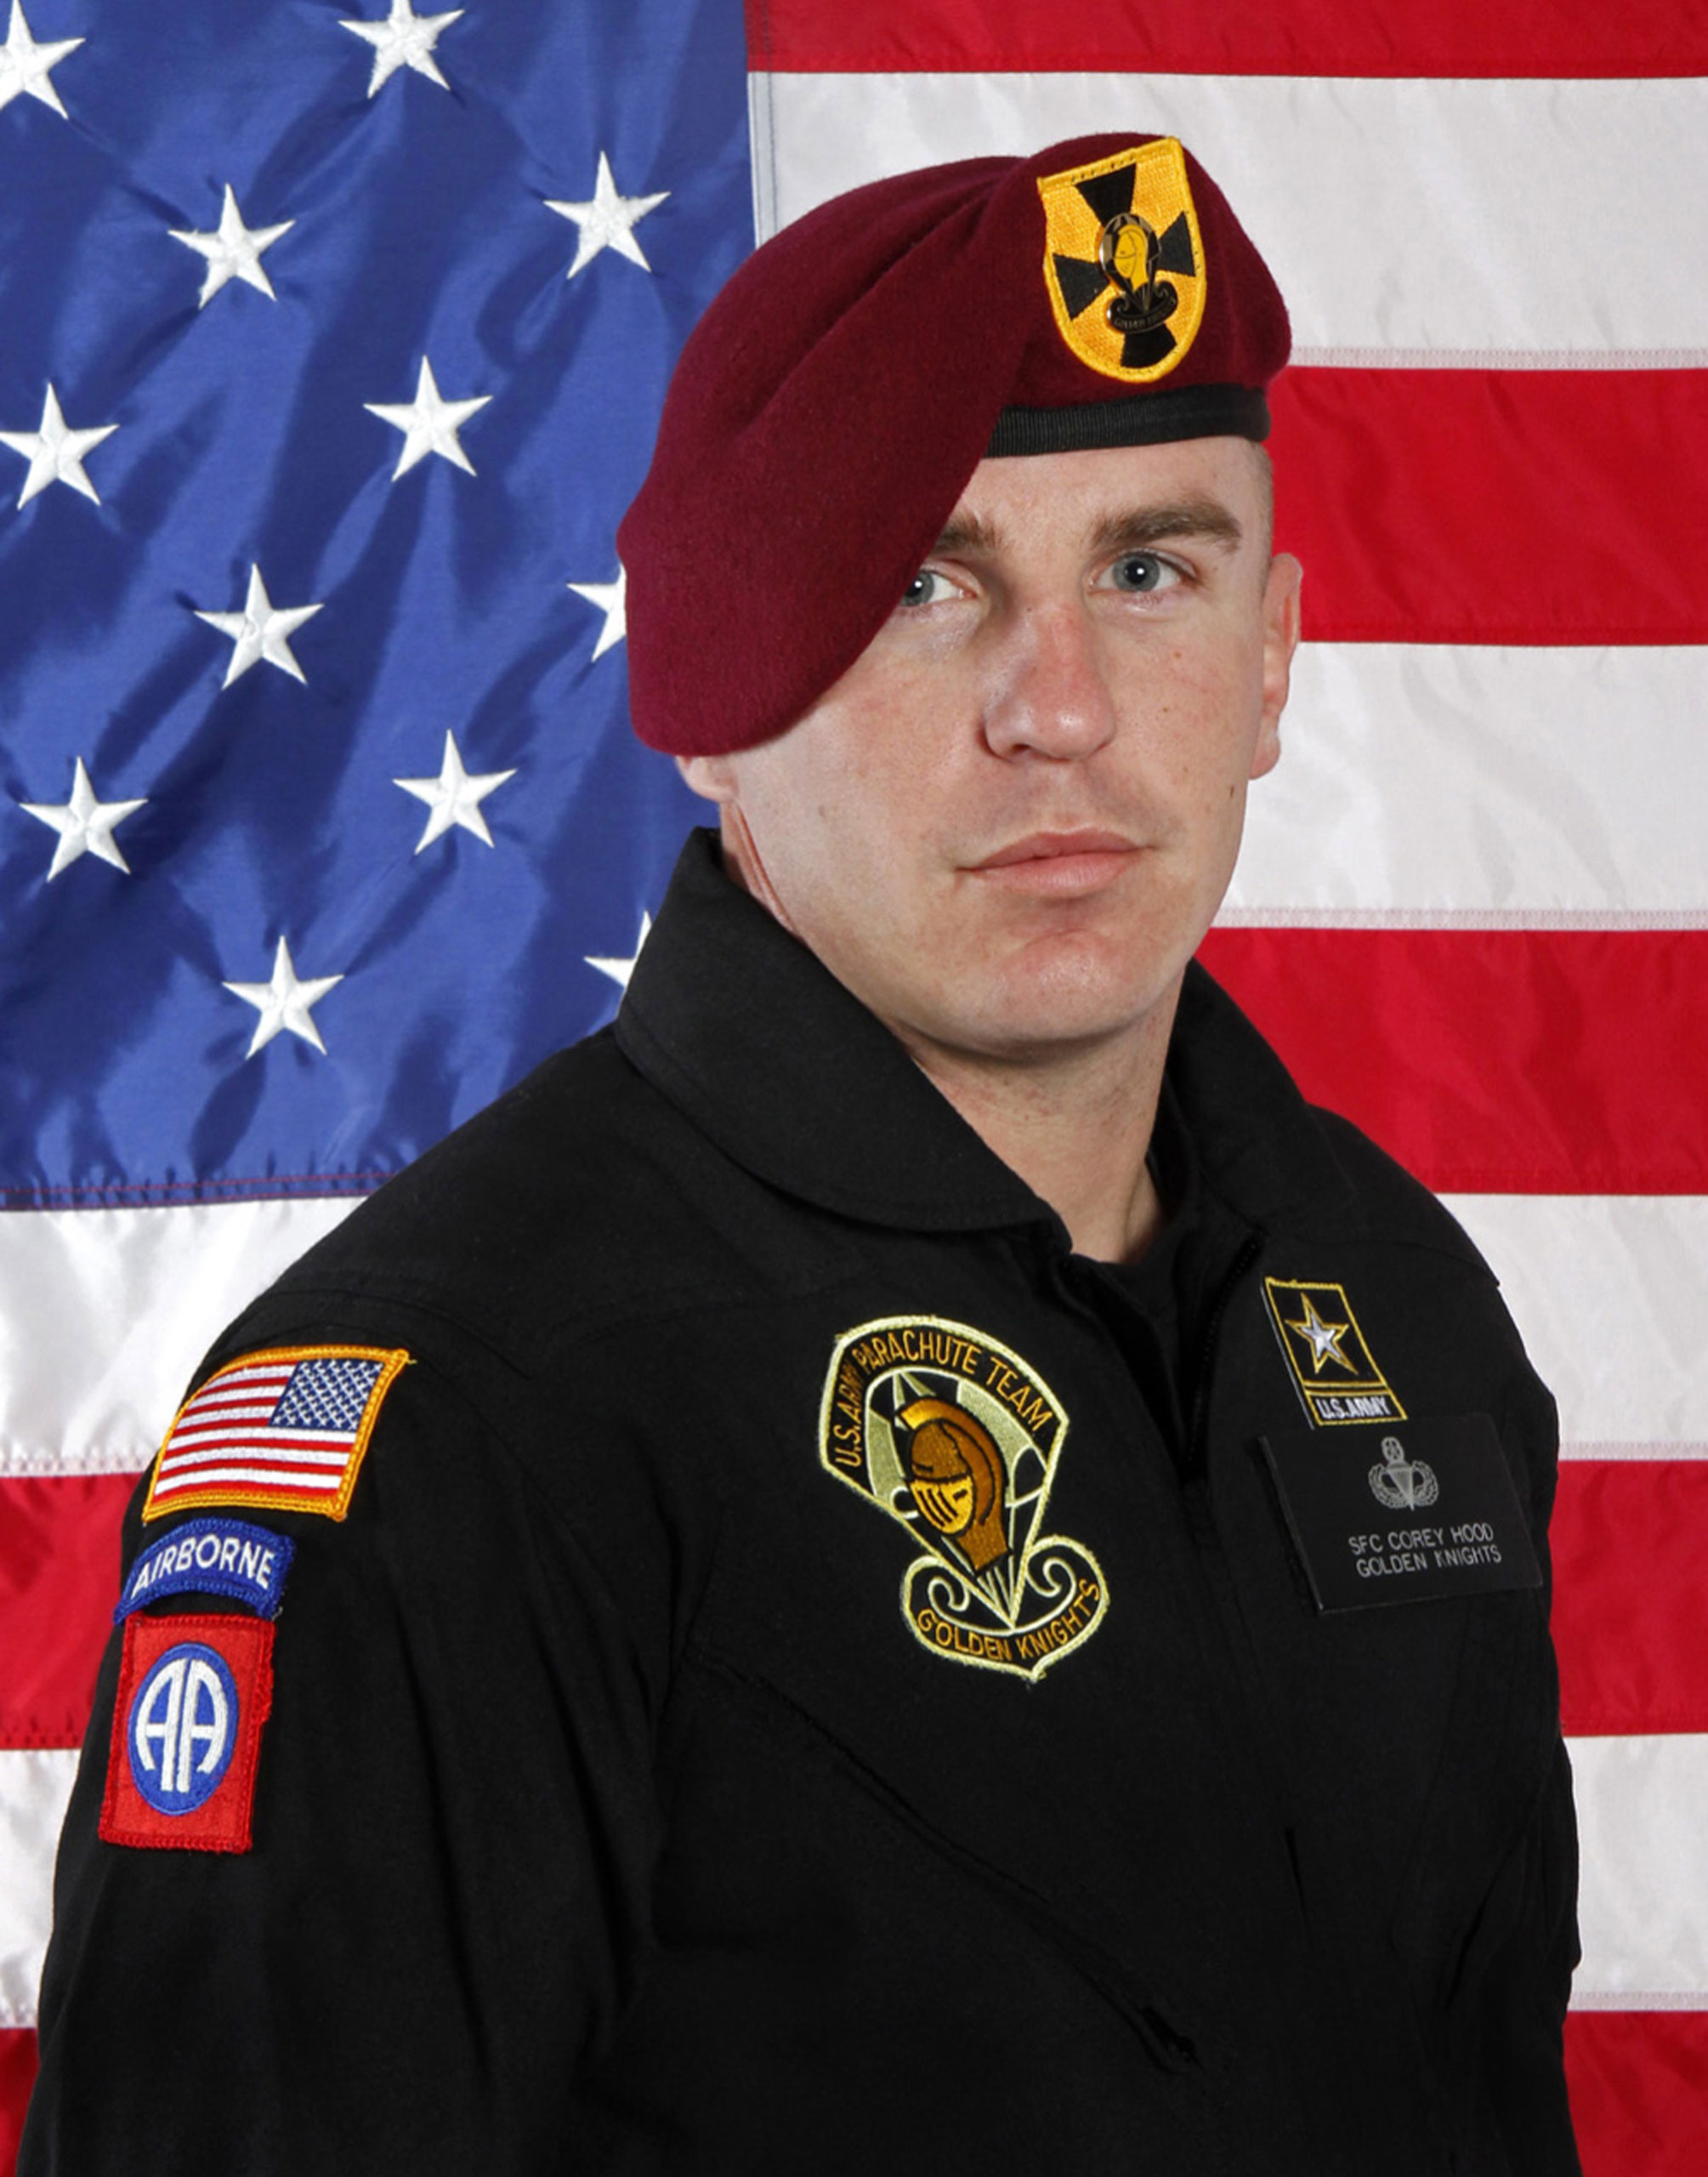 This undated photo provided by the U.S. Army shows Sgt. 1st Class Corey Hood, a parachutist who died after an accident during a stunt at the Chicago Air and Water Show on Aug. 16, 2015 .